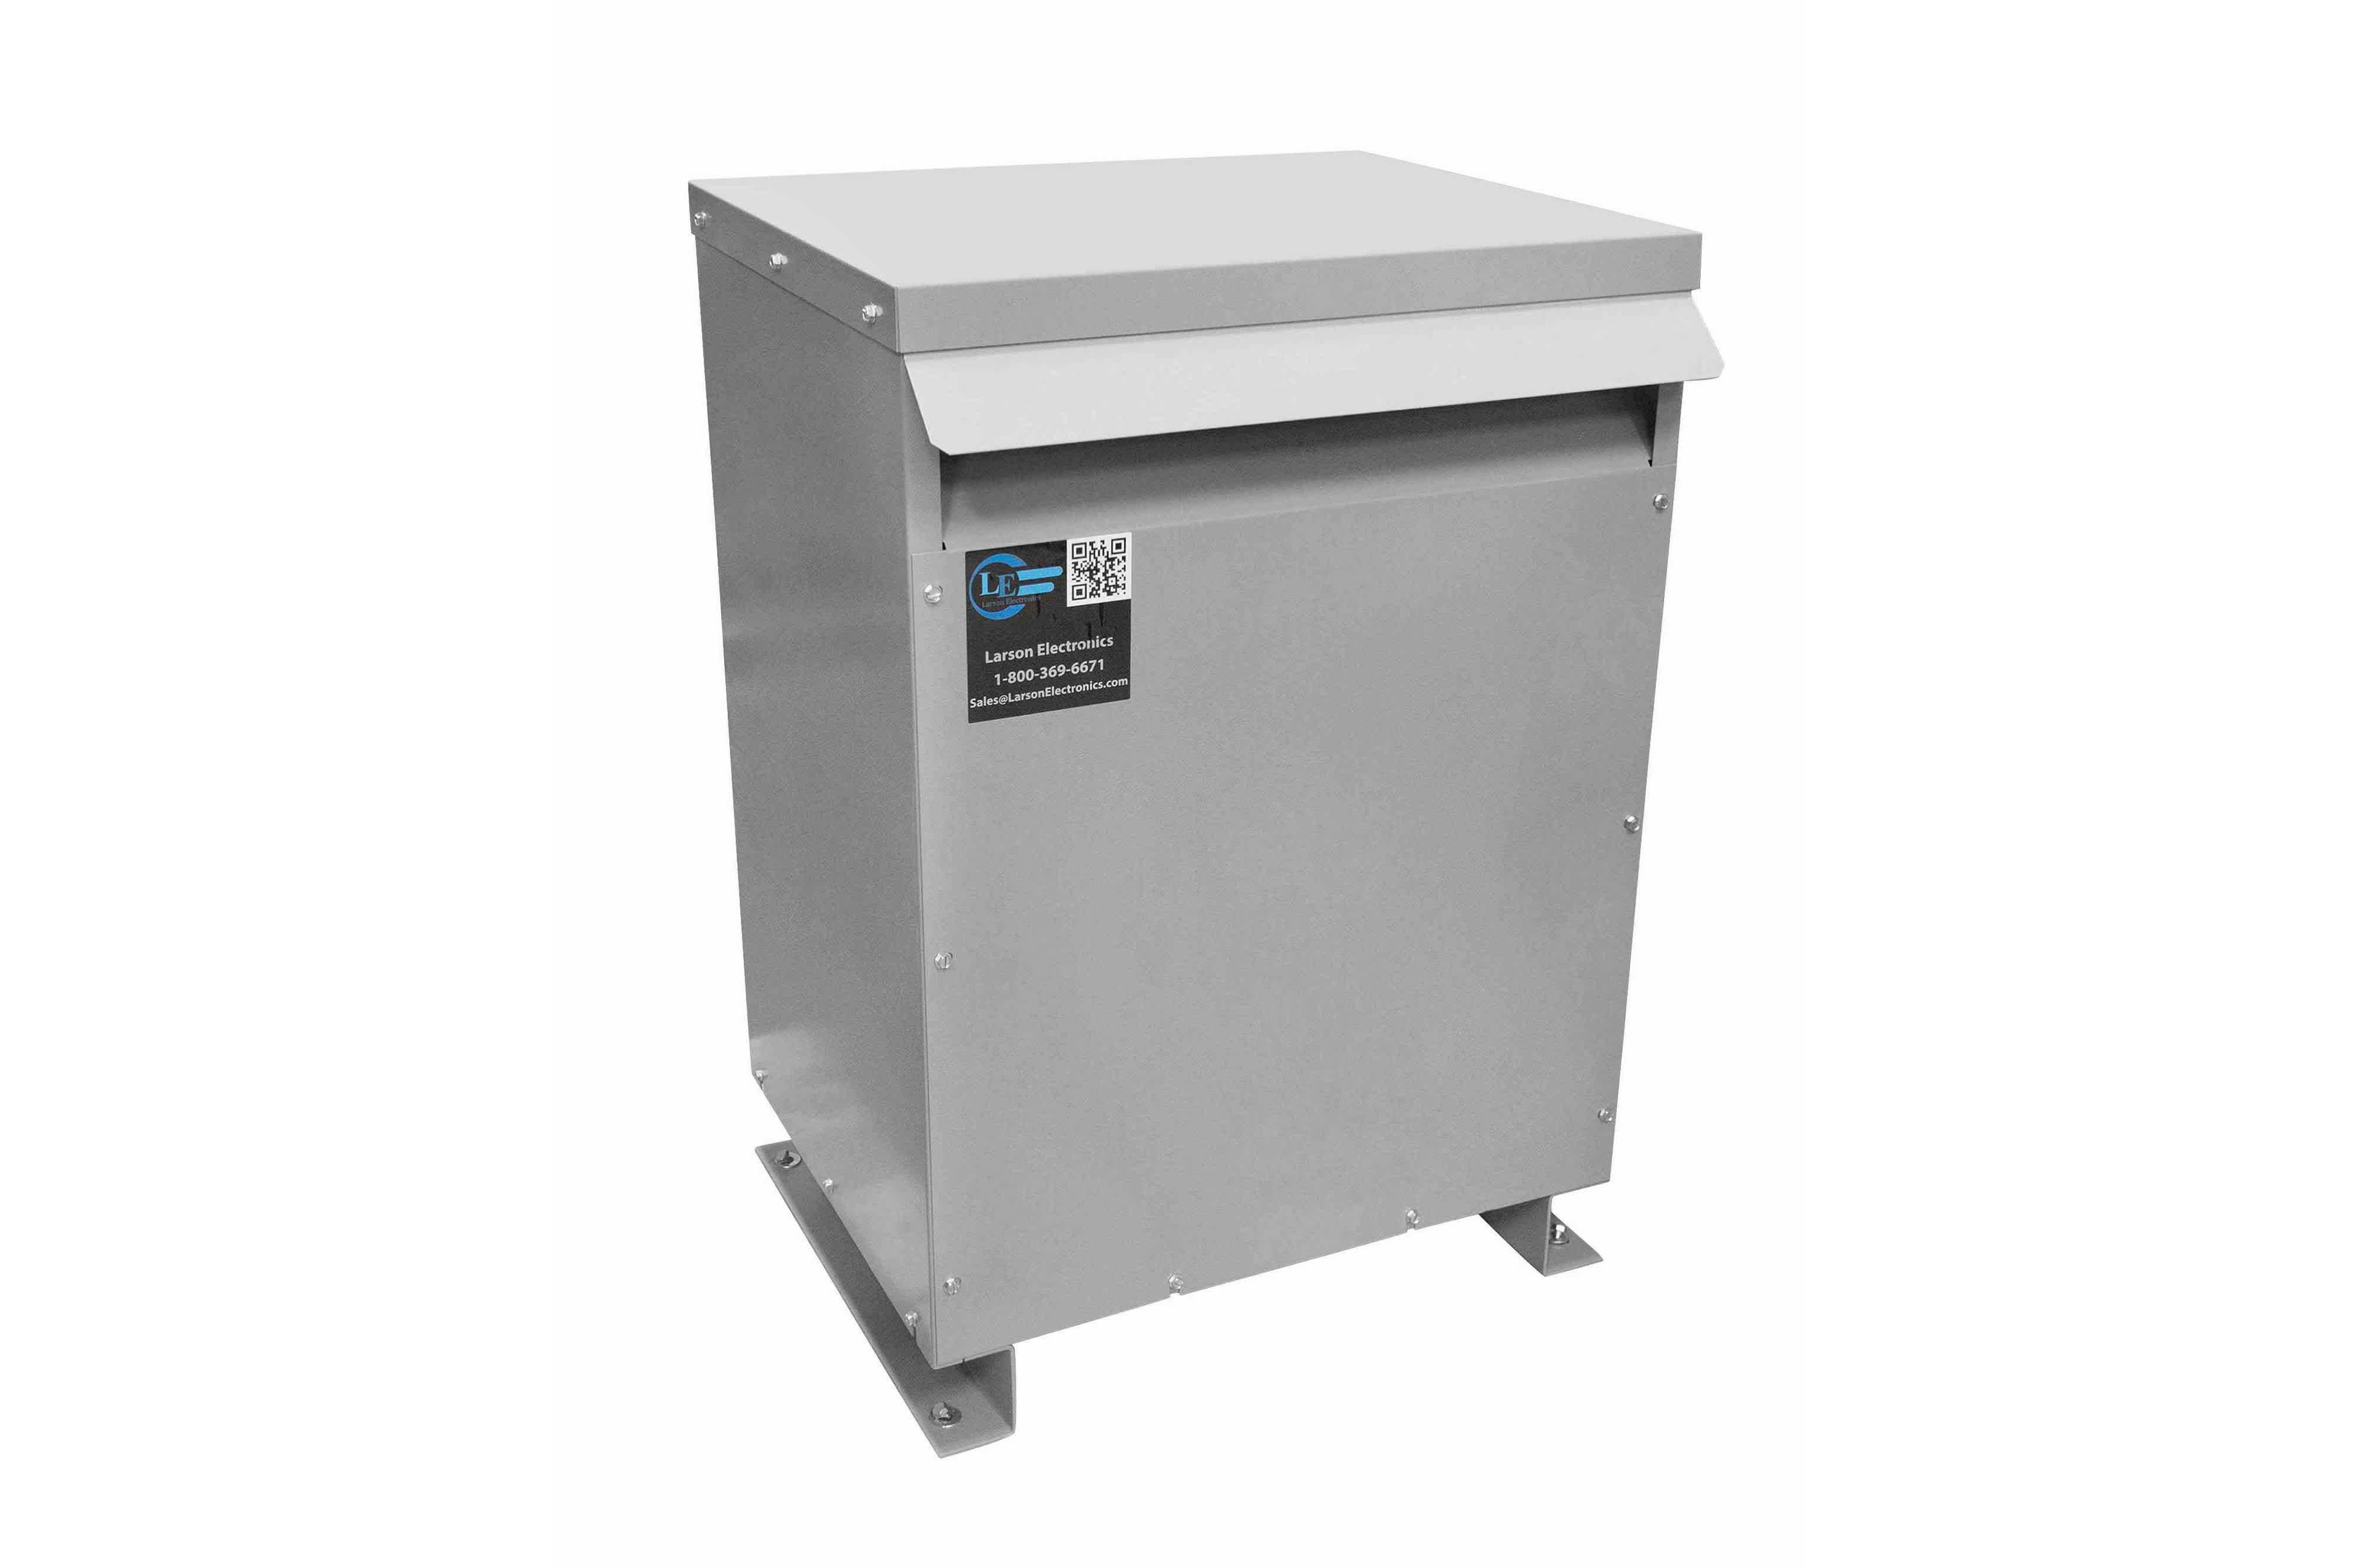 400 kVA 3PH Isolation Transformer, 240V Delta Primary, 400V Delta Secondary, N3R, Ventilated, 60 Hz